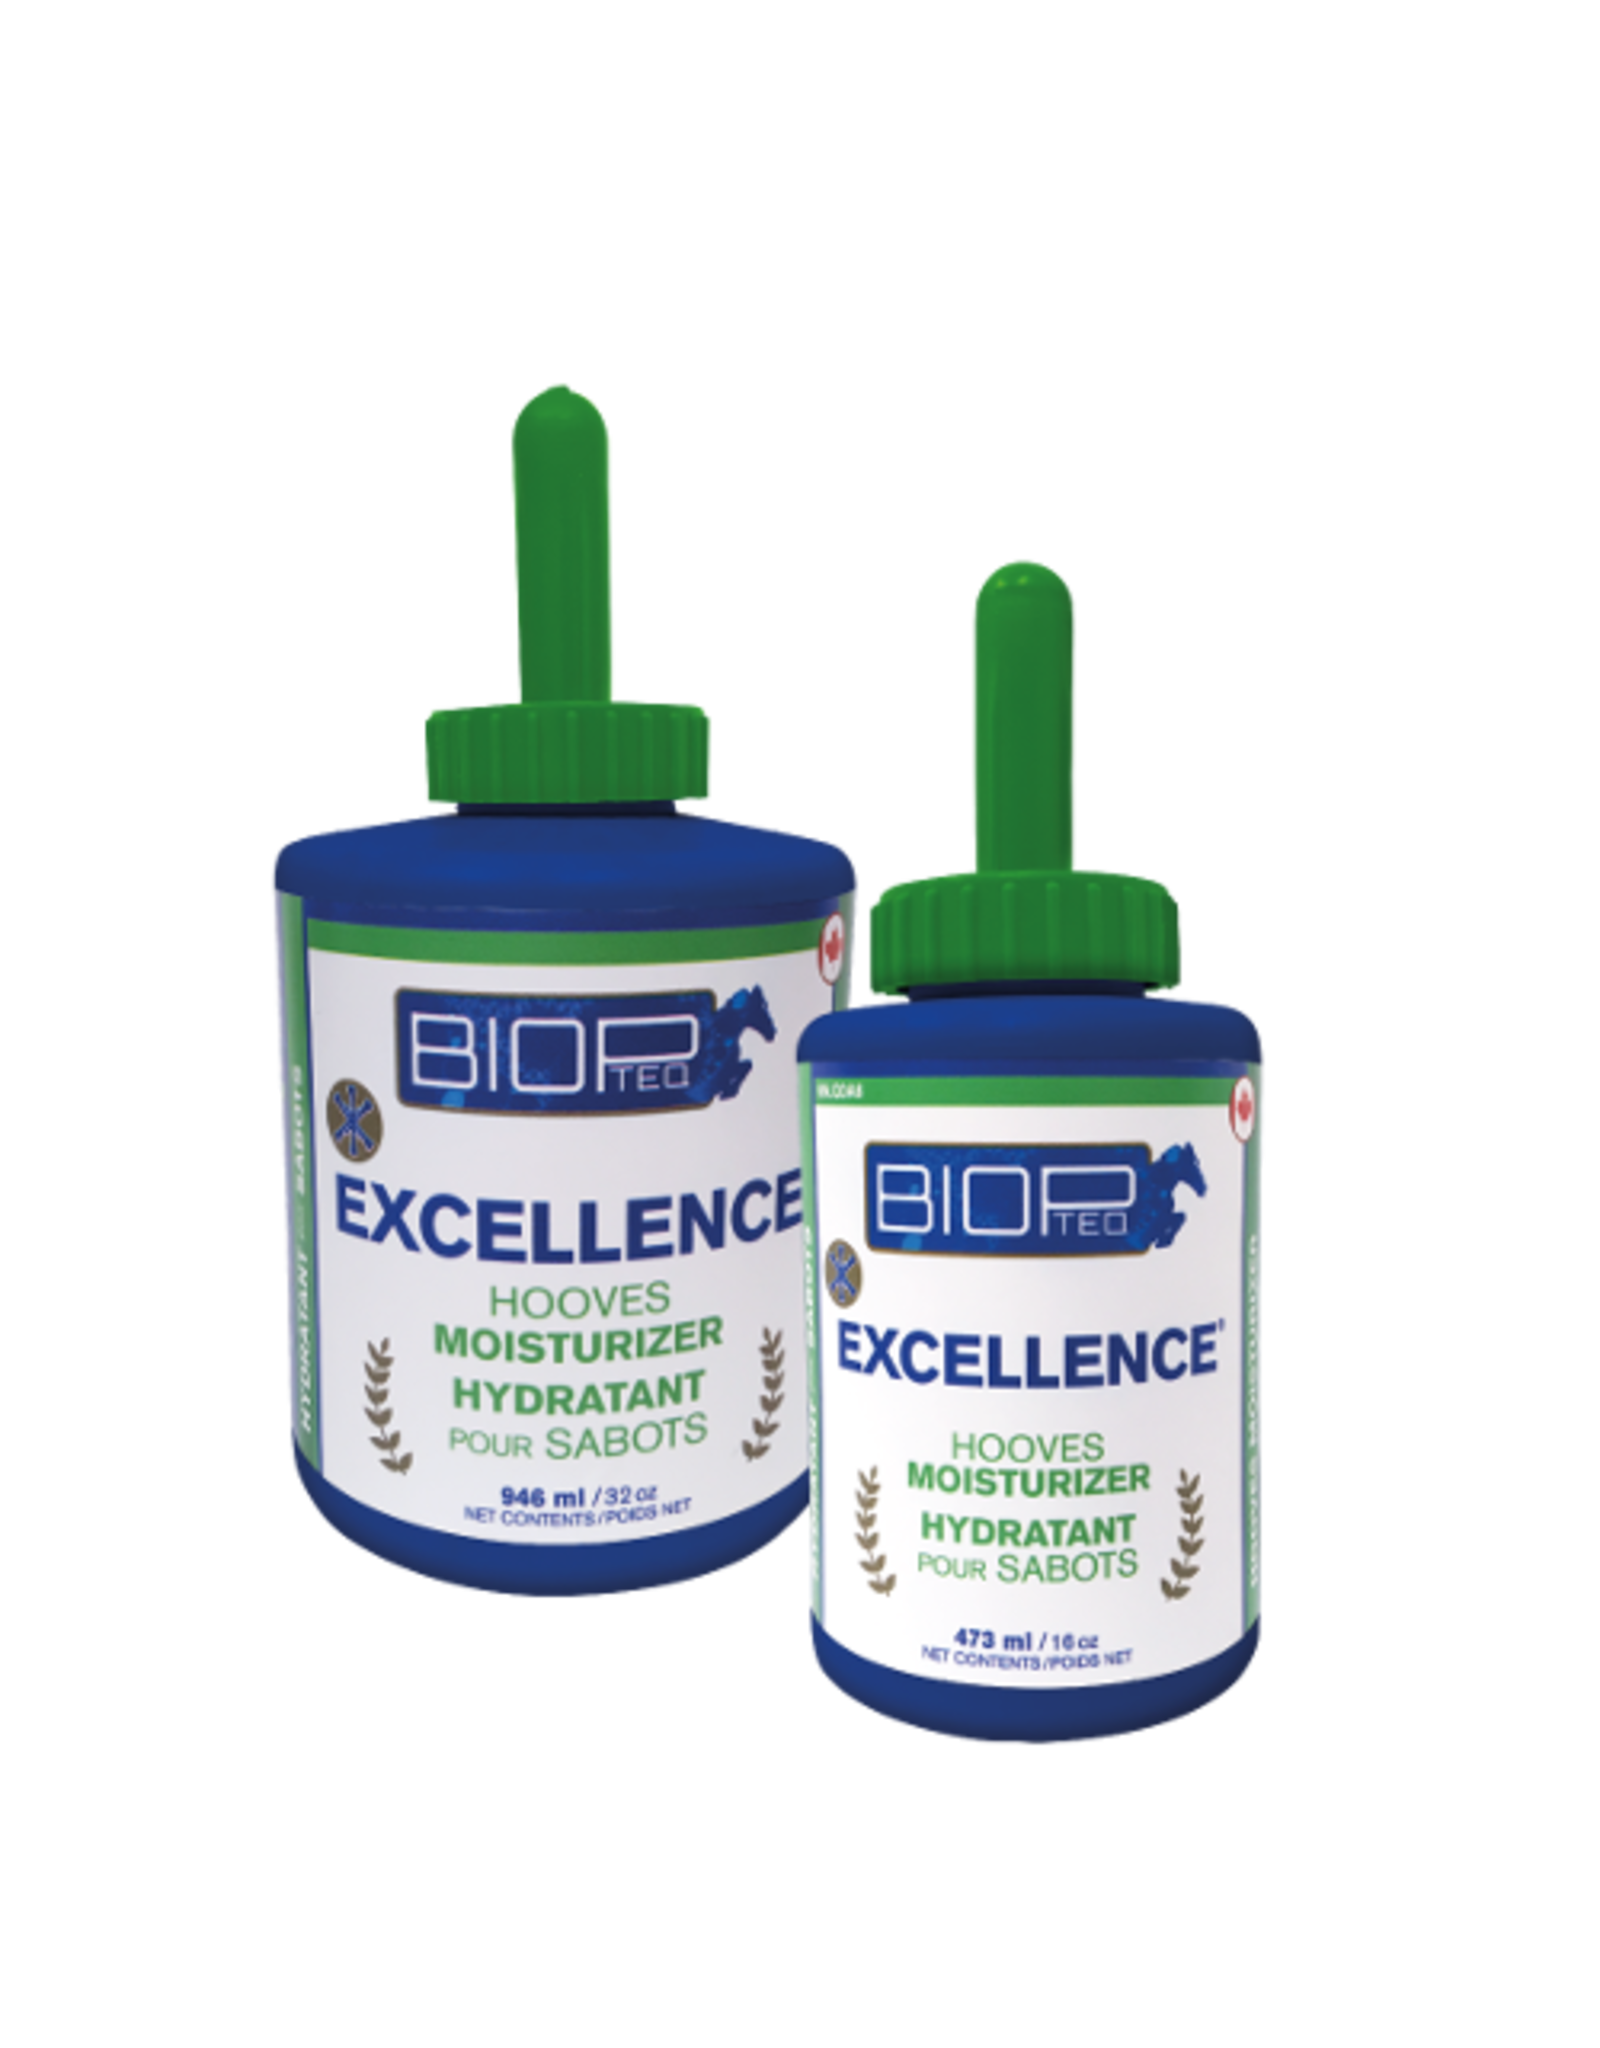 Biopteq Huile Excellence 946 ml, Biopteq